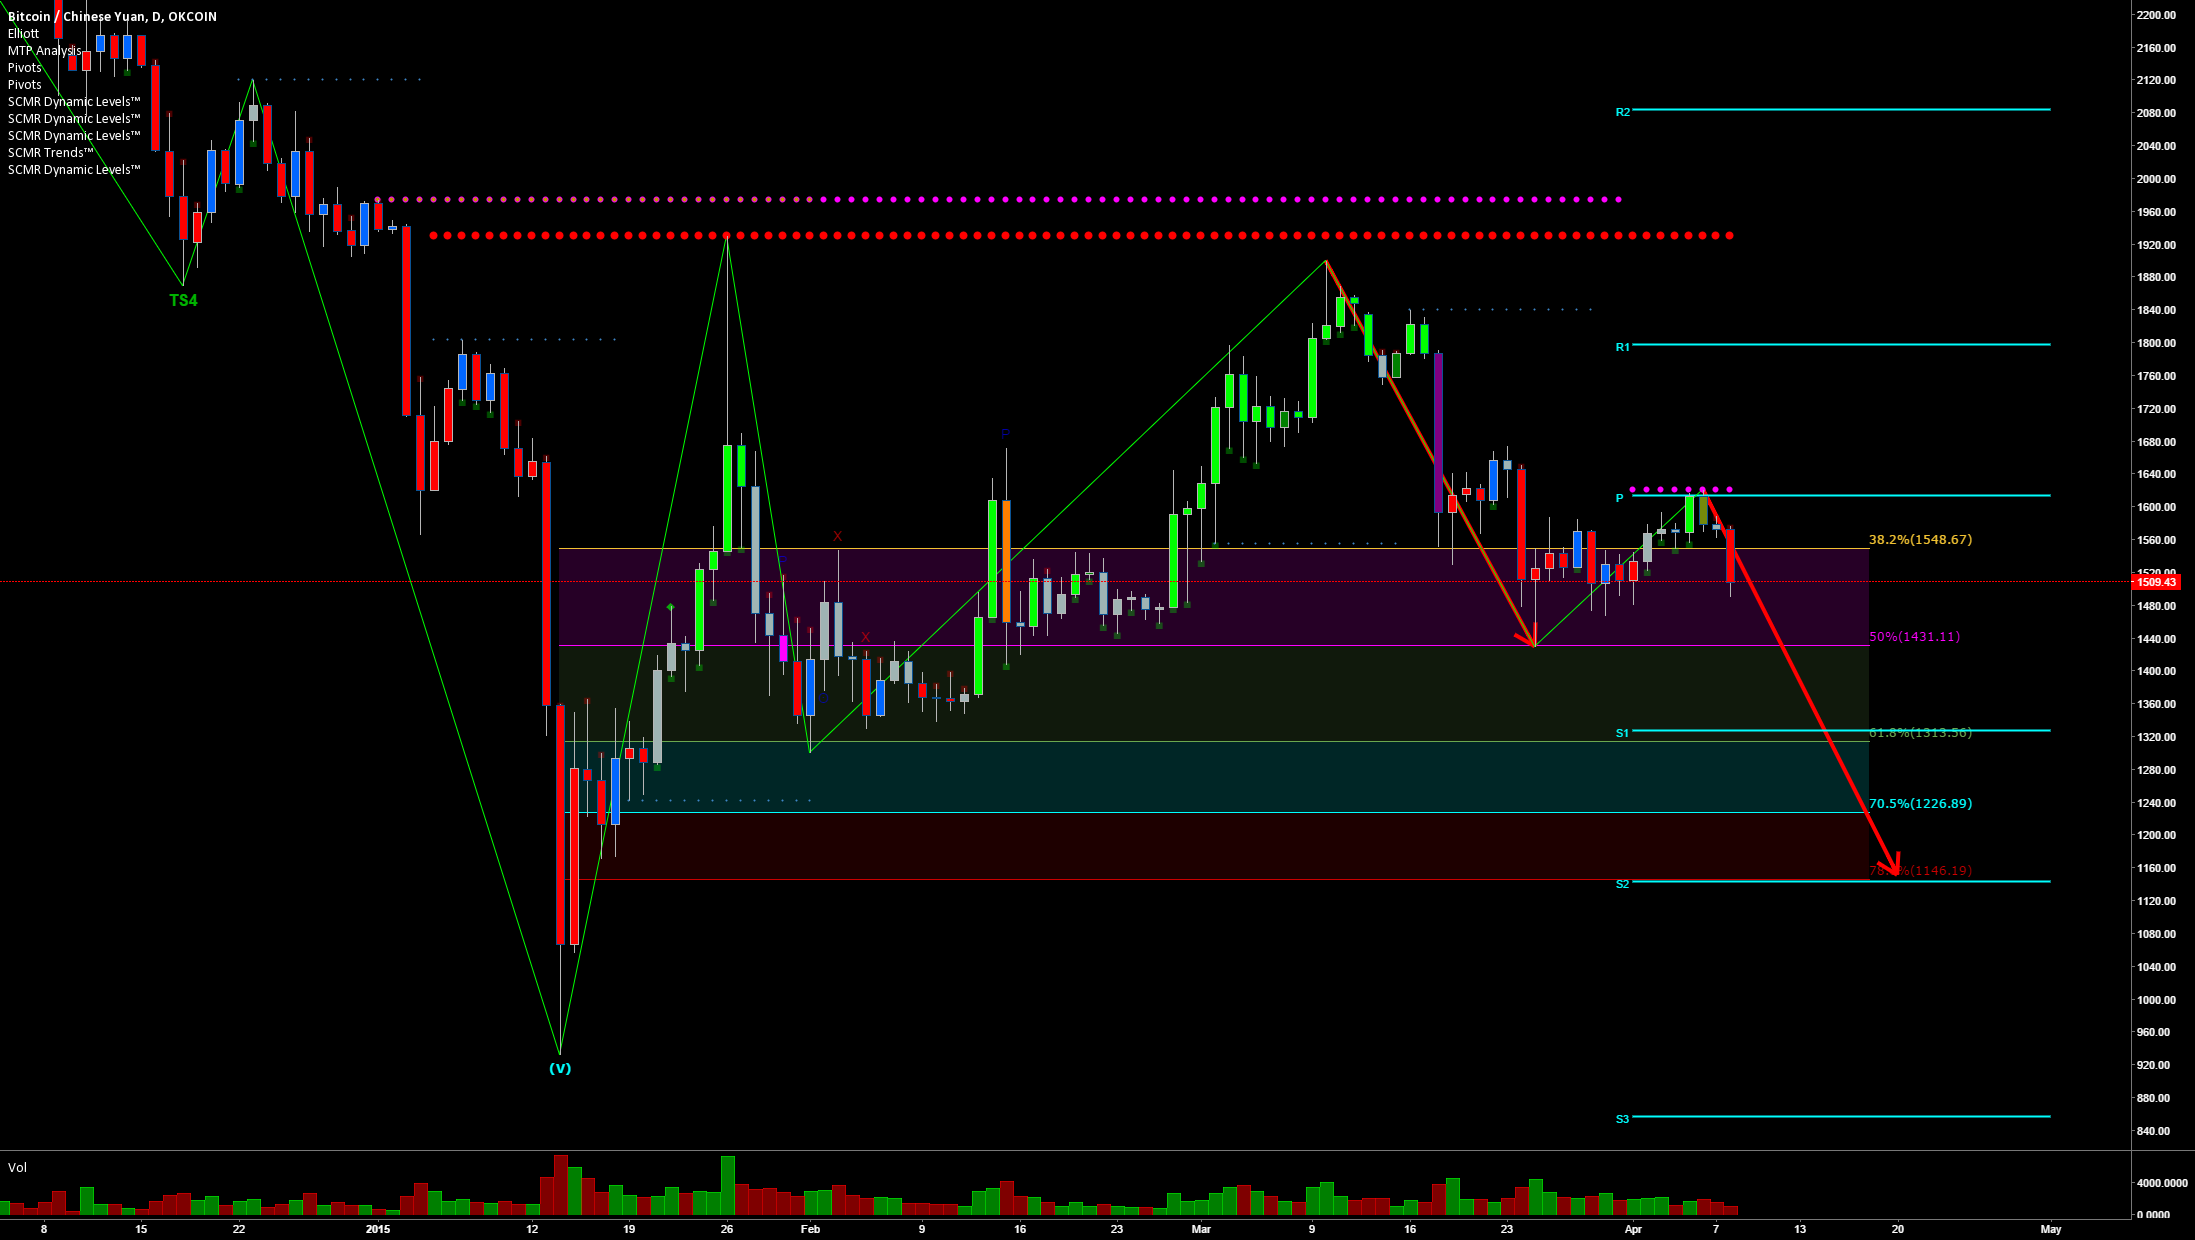 Oops BTC. 78.6 is incoming, hold onto your hats